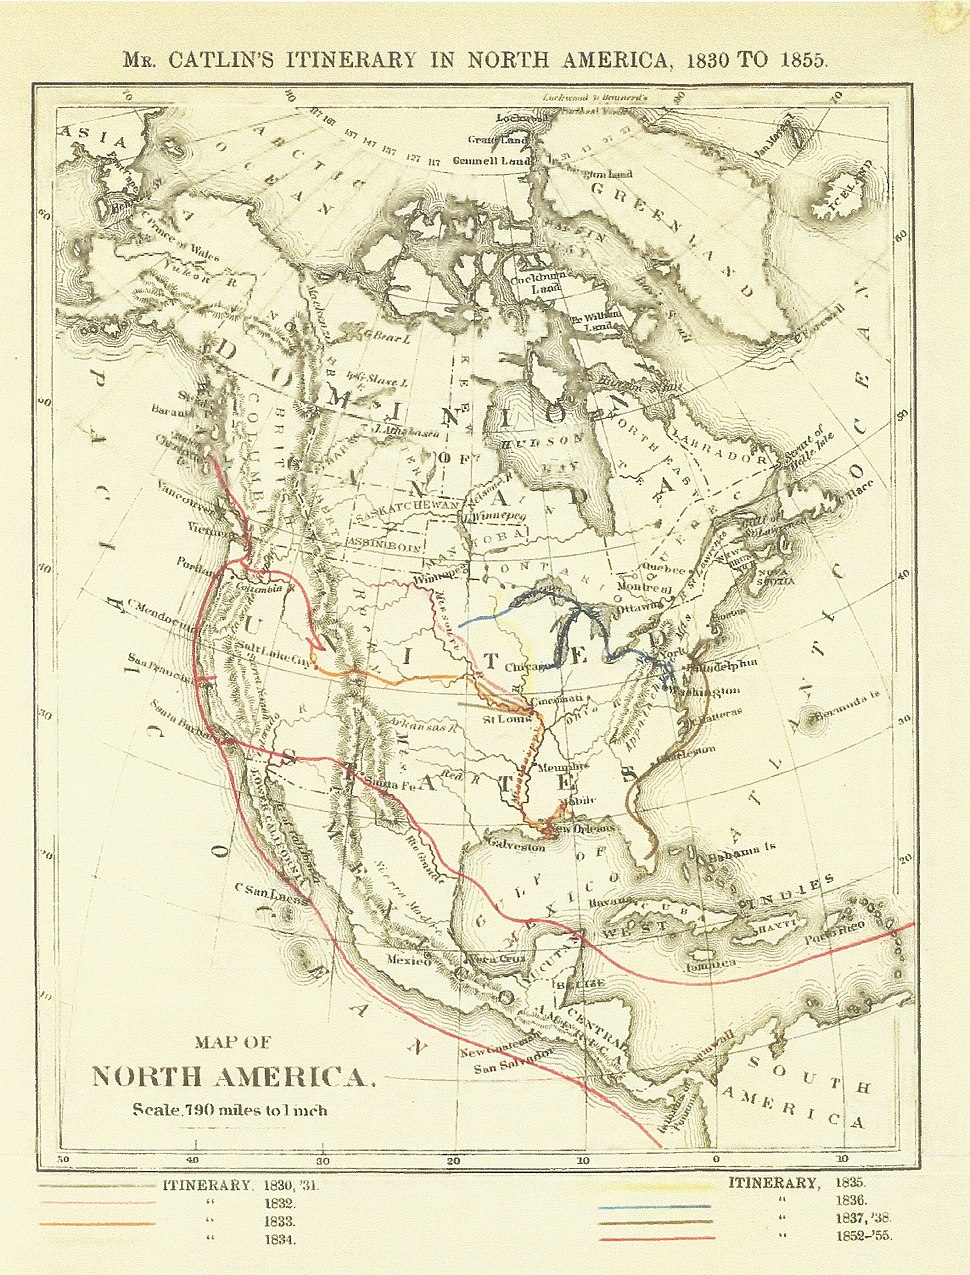 George Catlin's travels in North America, 1830-1855